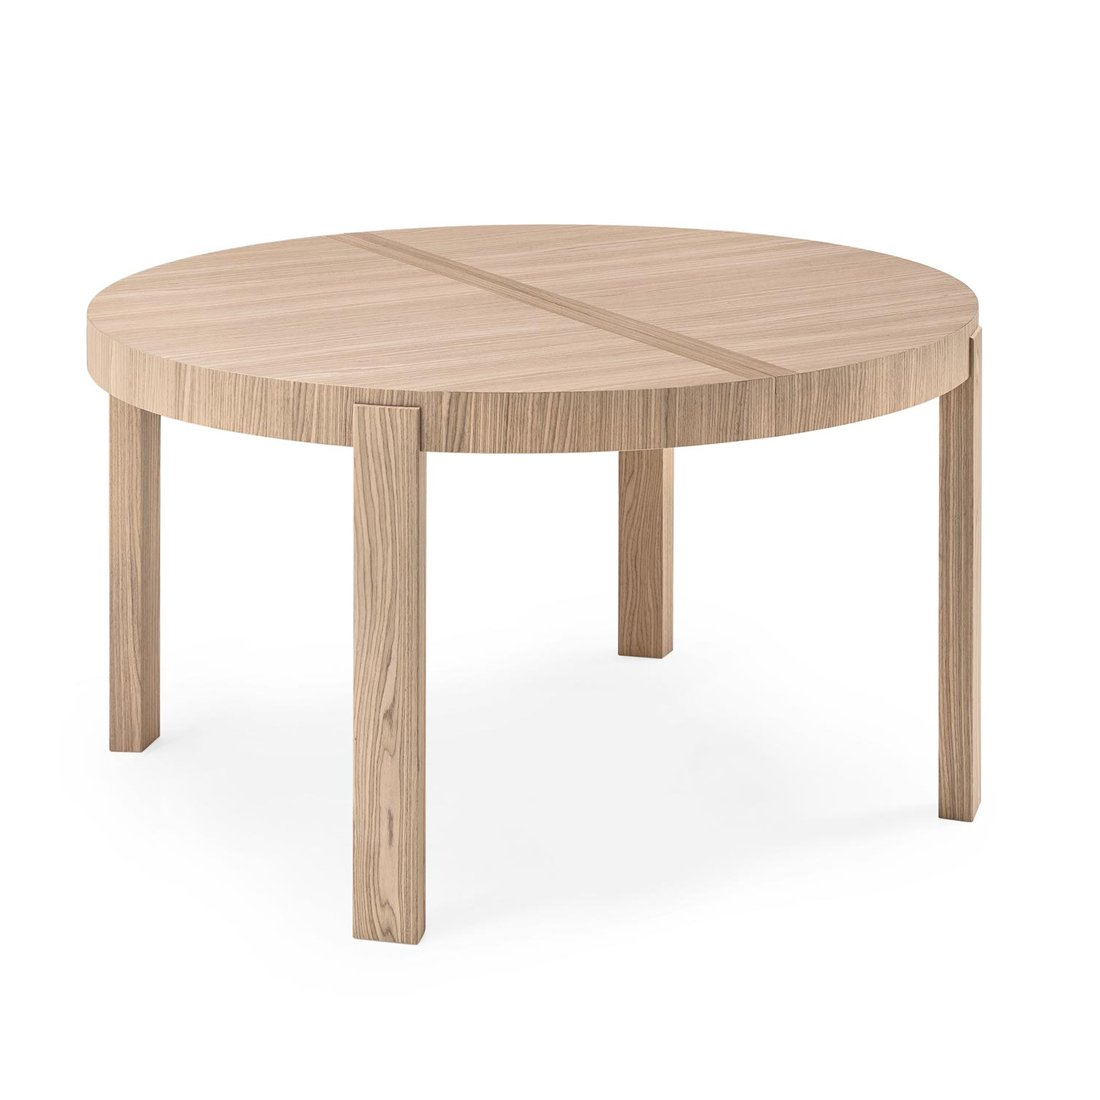 Cdiscount Table Extensible Meuble Table Ronde Extensible Meuble De Salon Contemporain